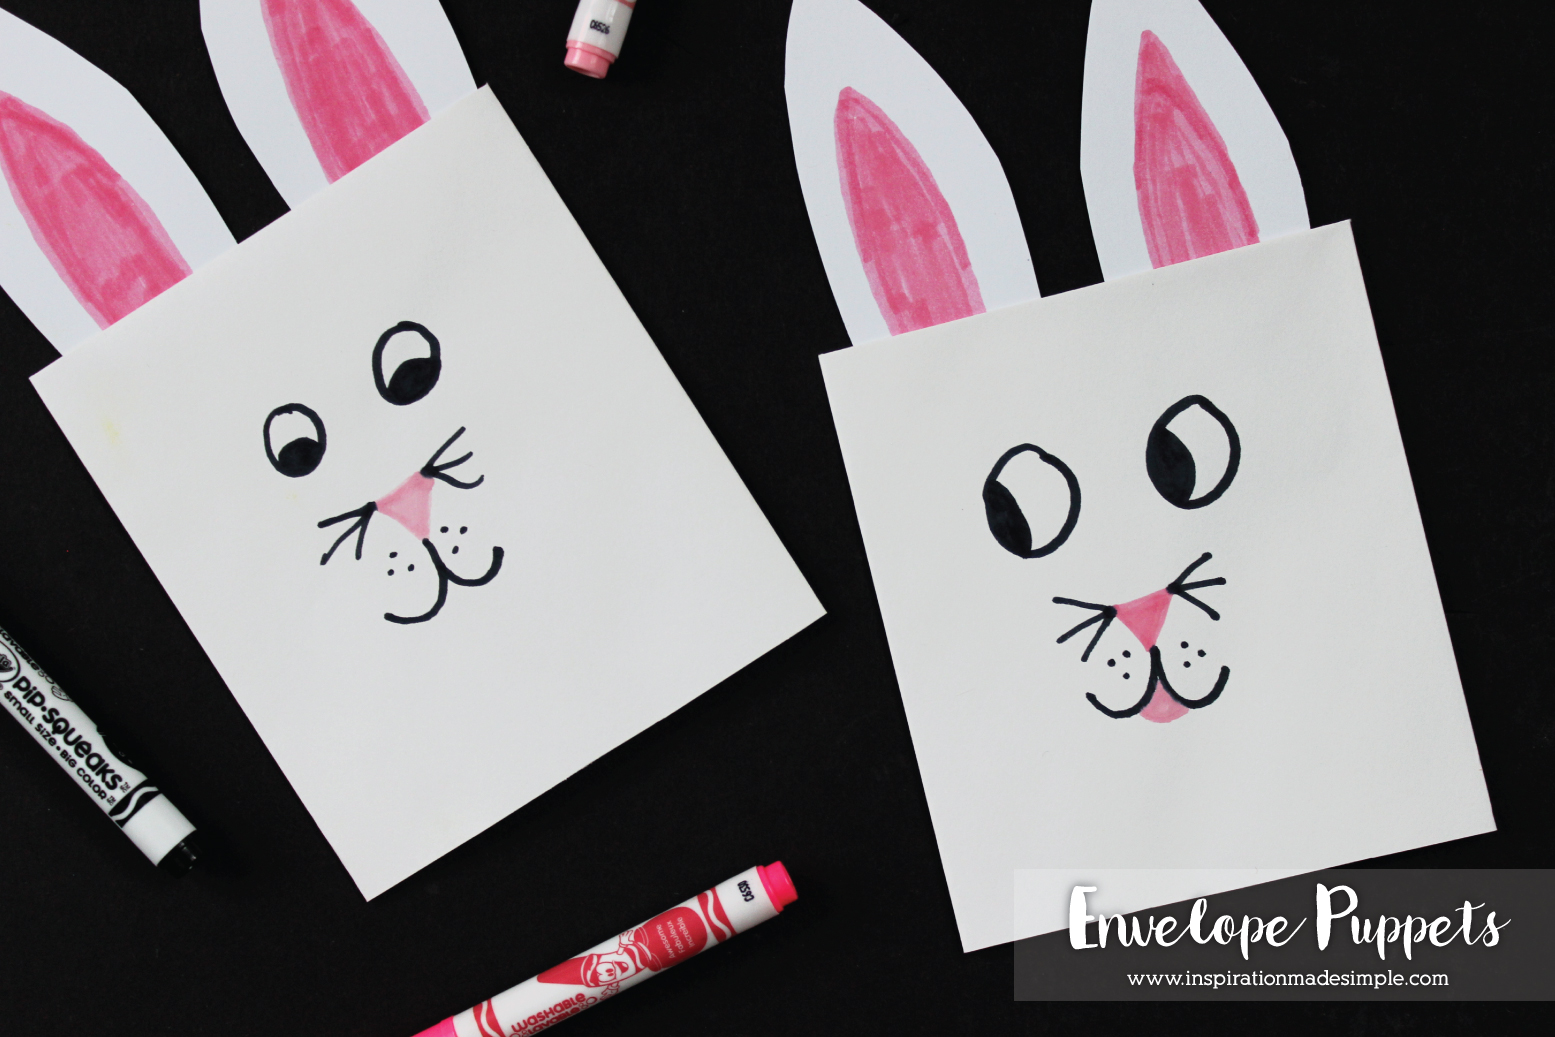 Easter Bunny Envelope Puppets are fun and simple to make! Great boredom buster.